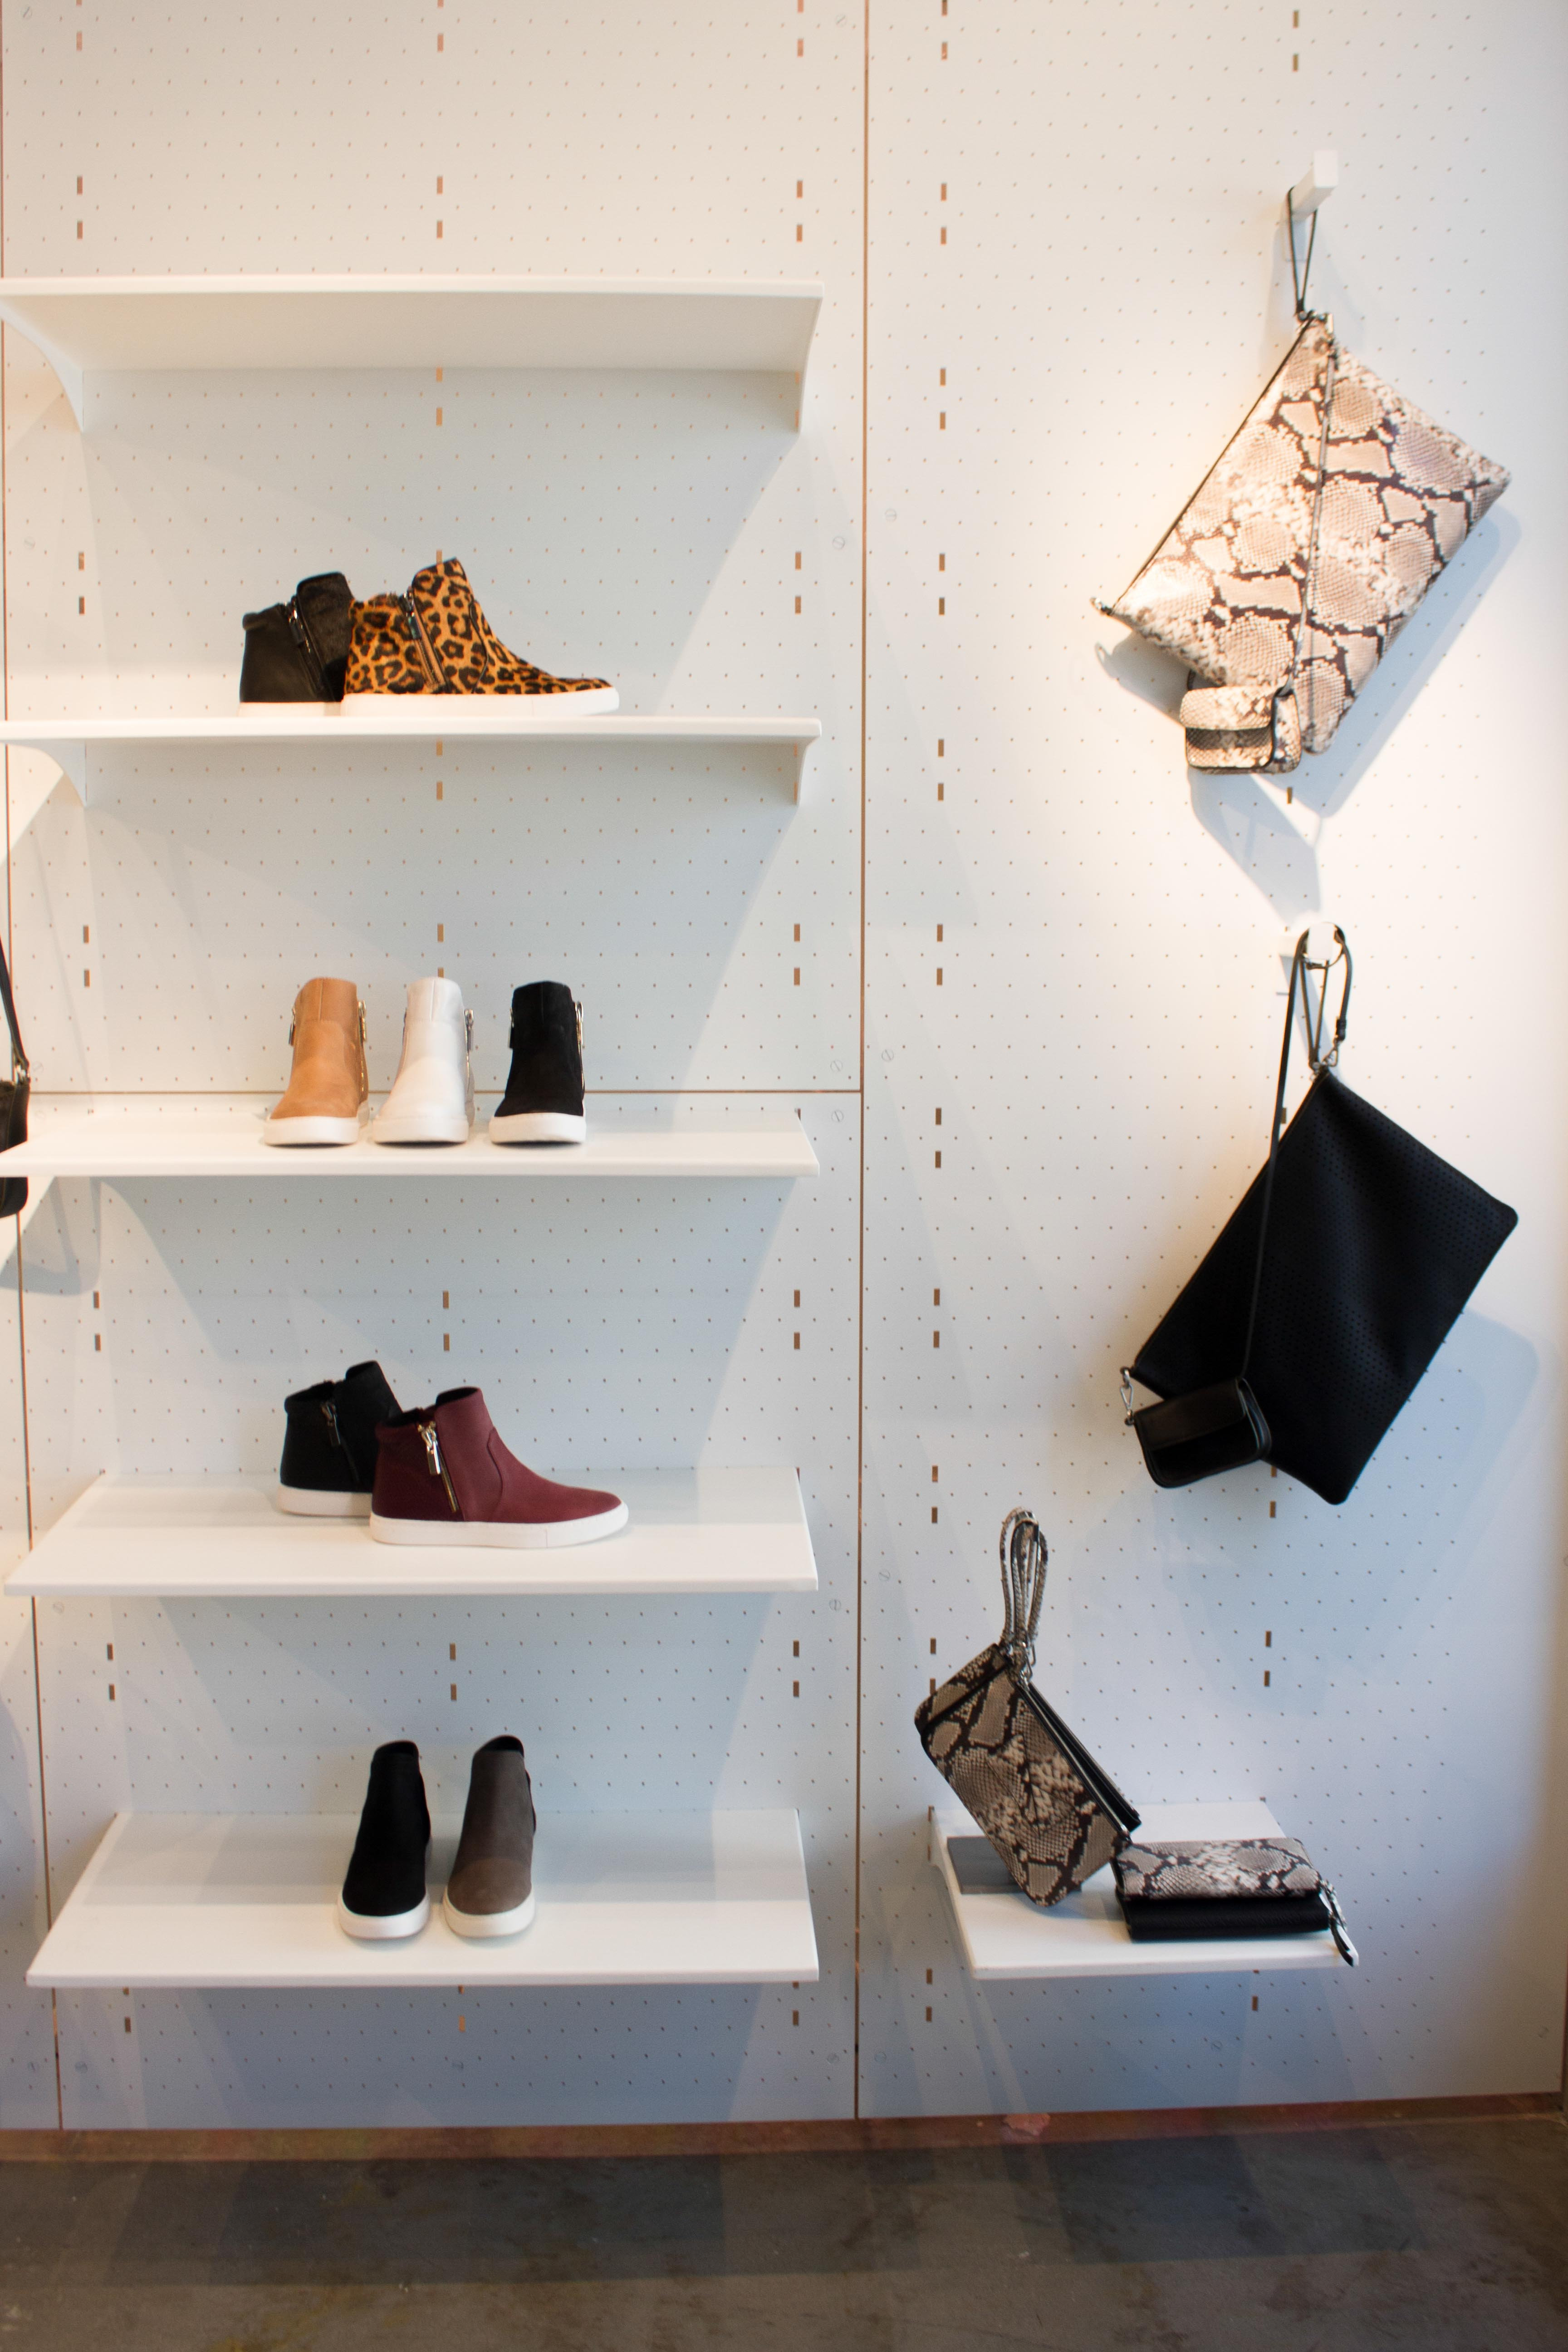 More shoes and accessories